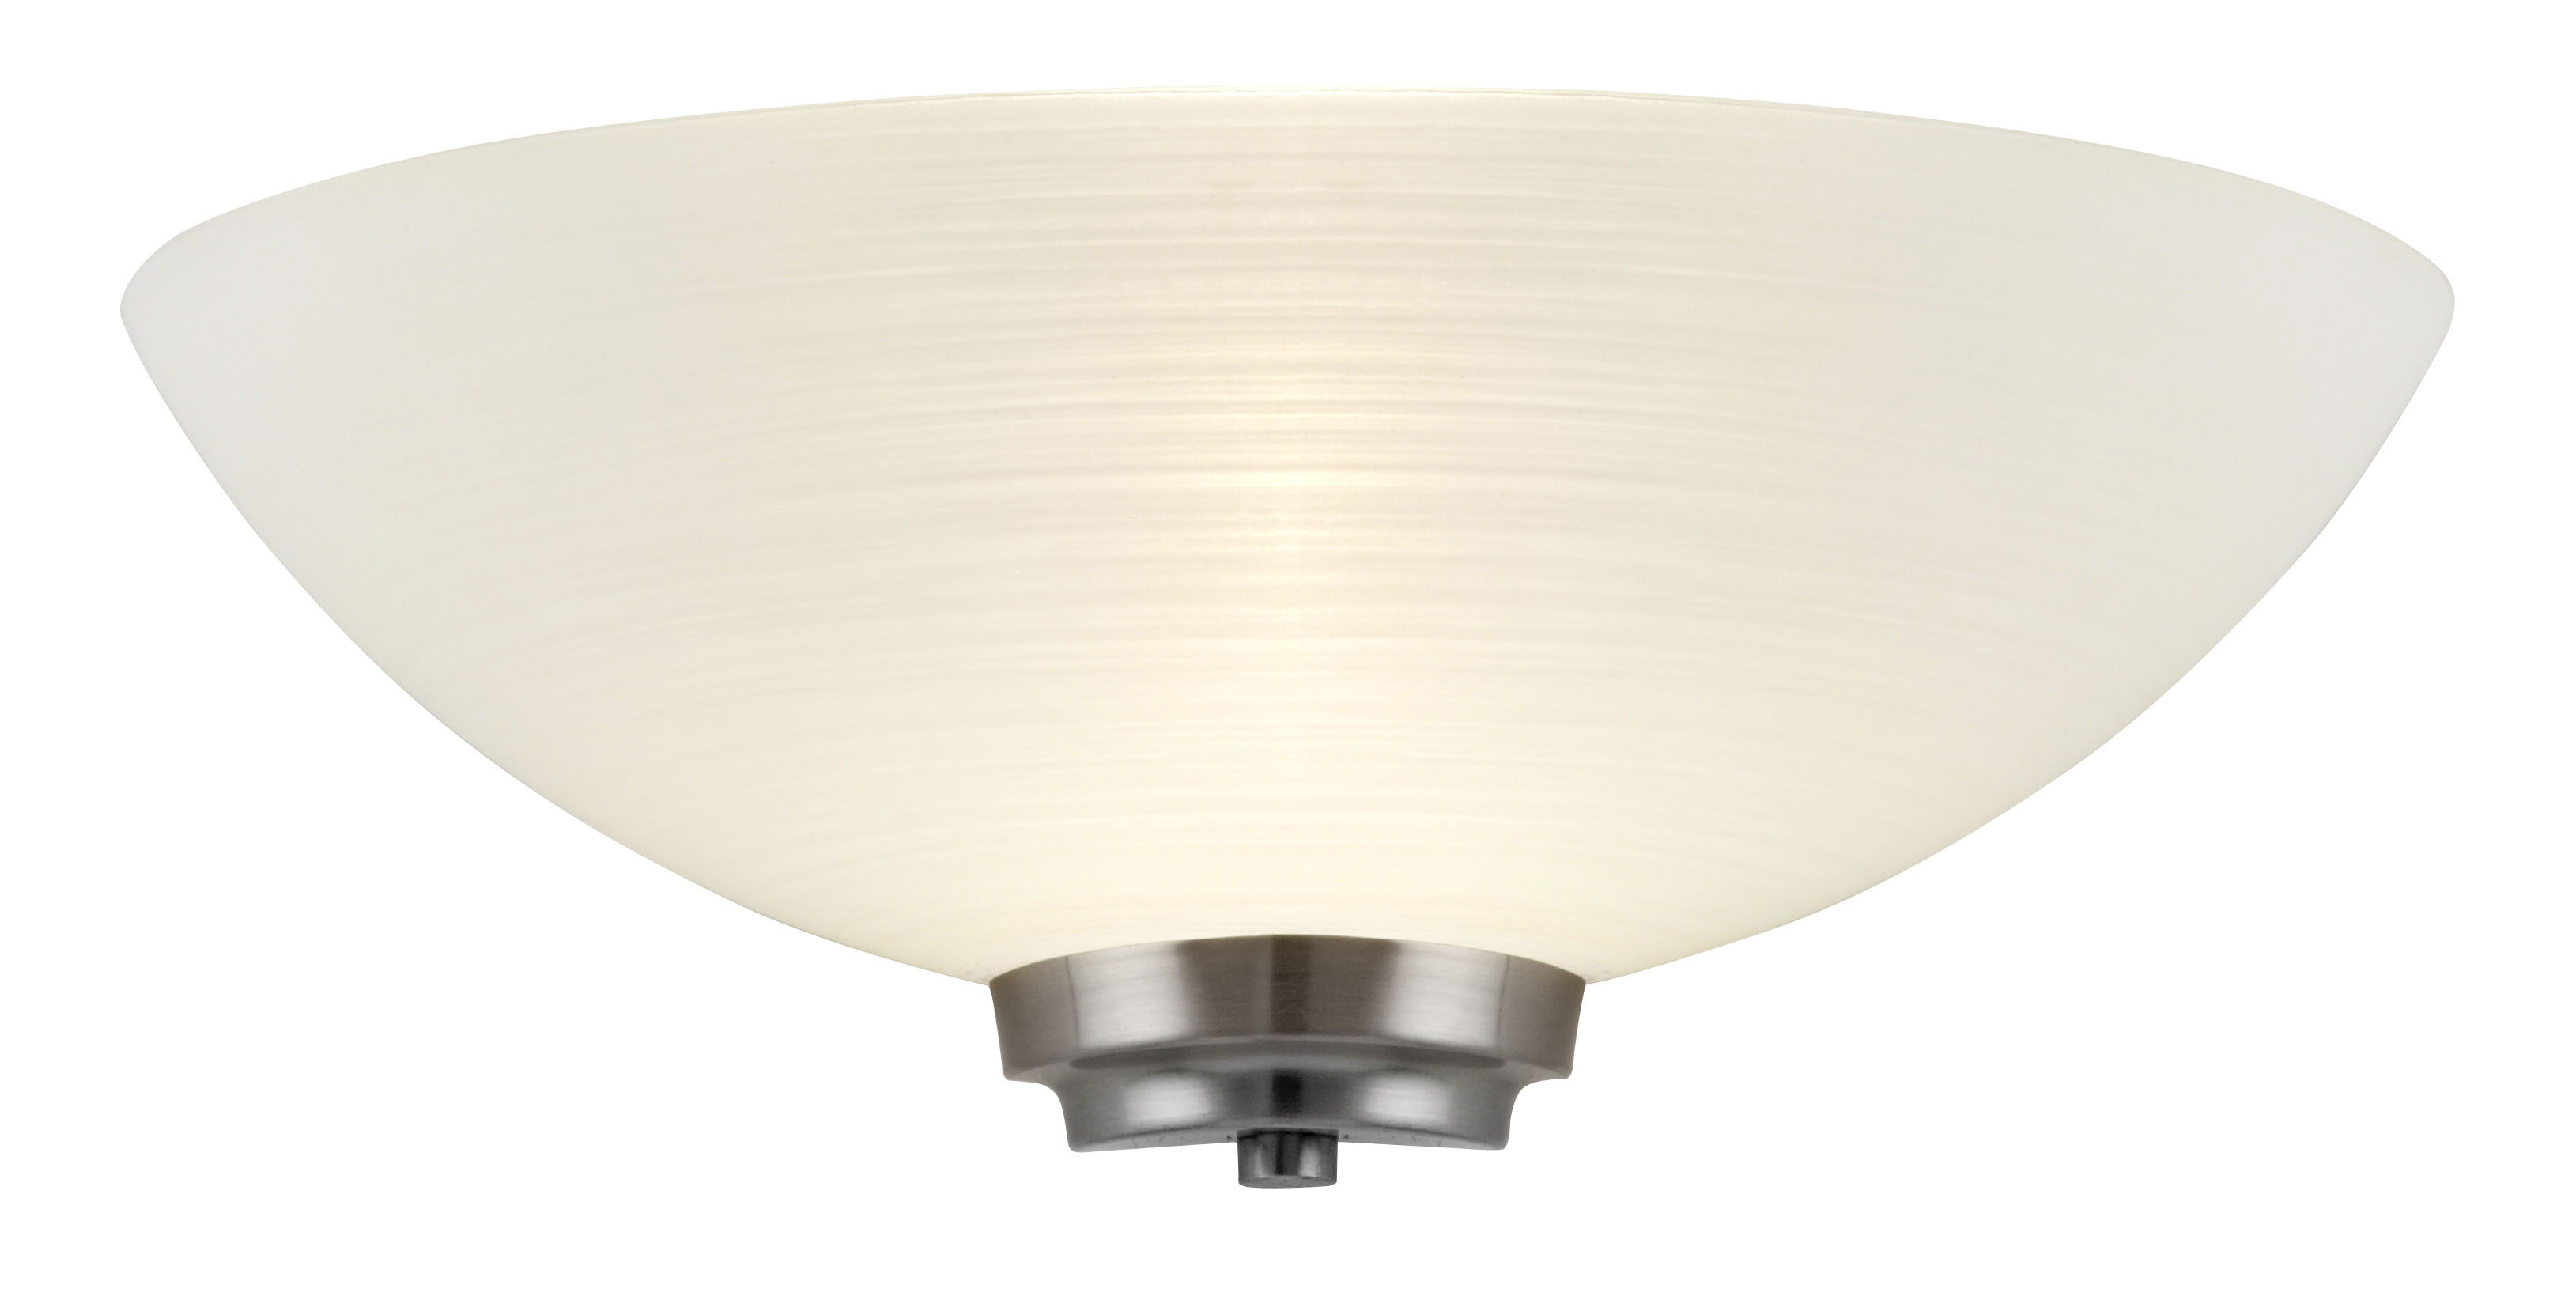 1 Light Wall Light In Satin Chrome Frosted Glass Shade